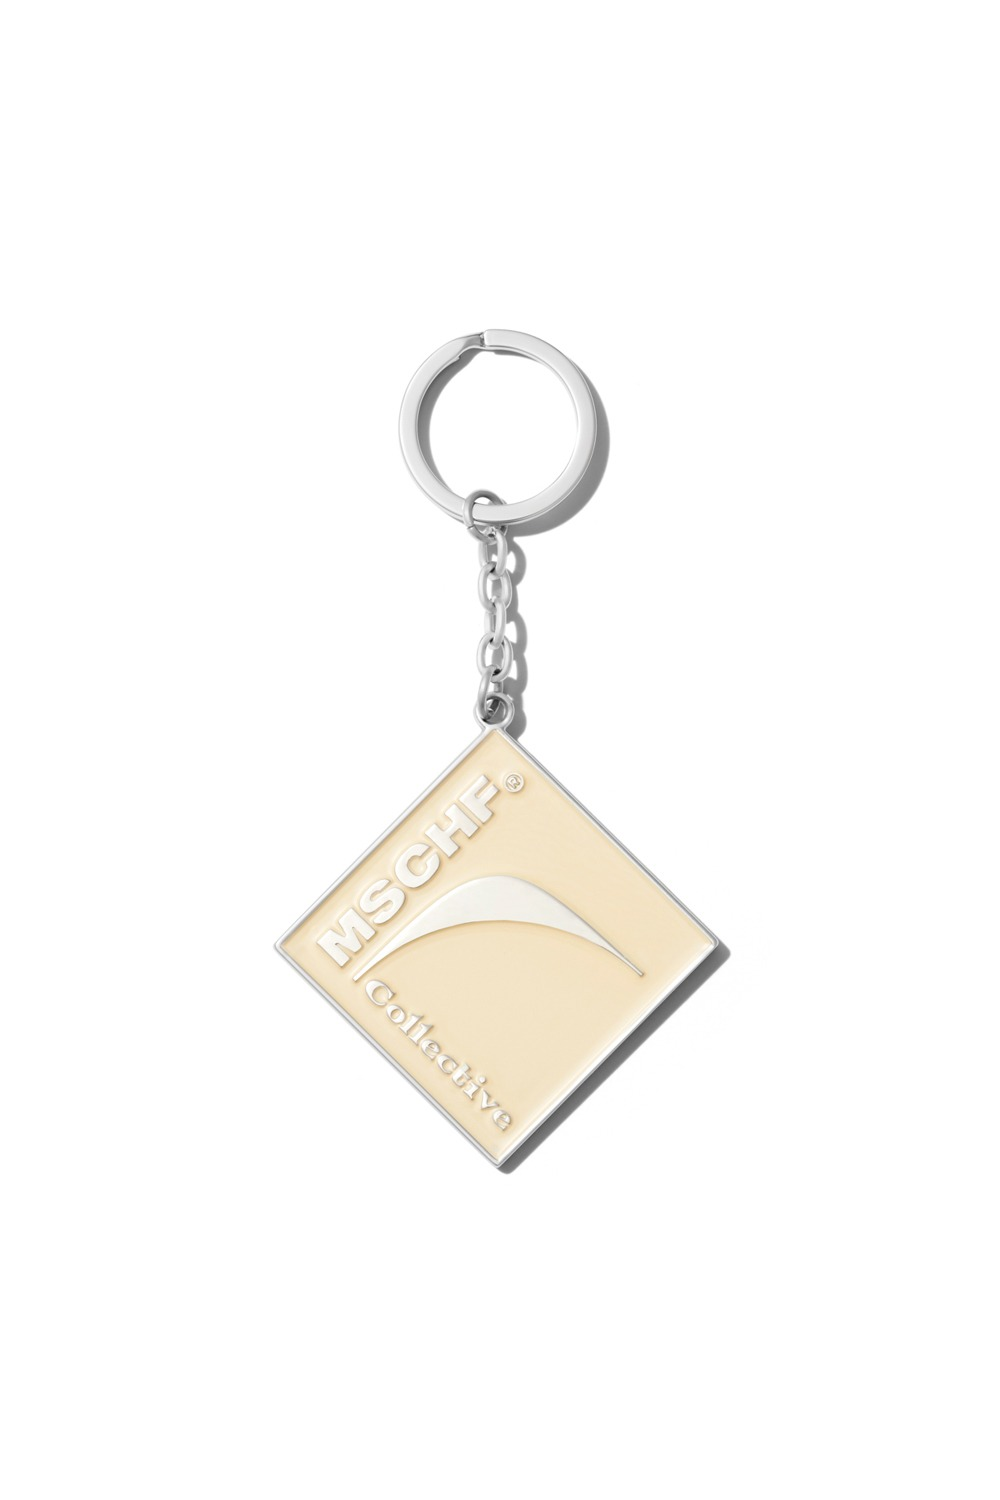 COLLECTIVE OG ENAMEL GLAZED KEY CHAIN_CREAM